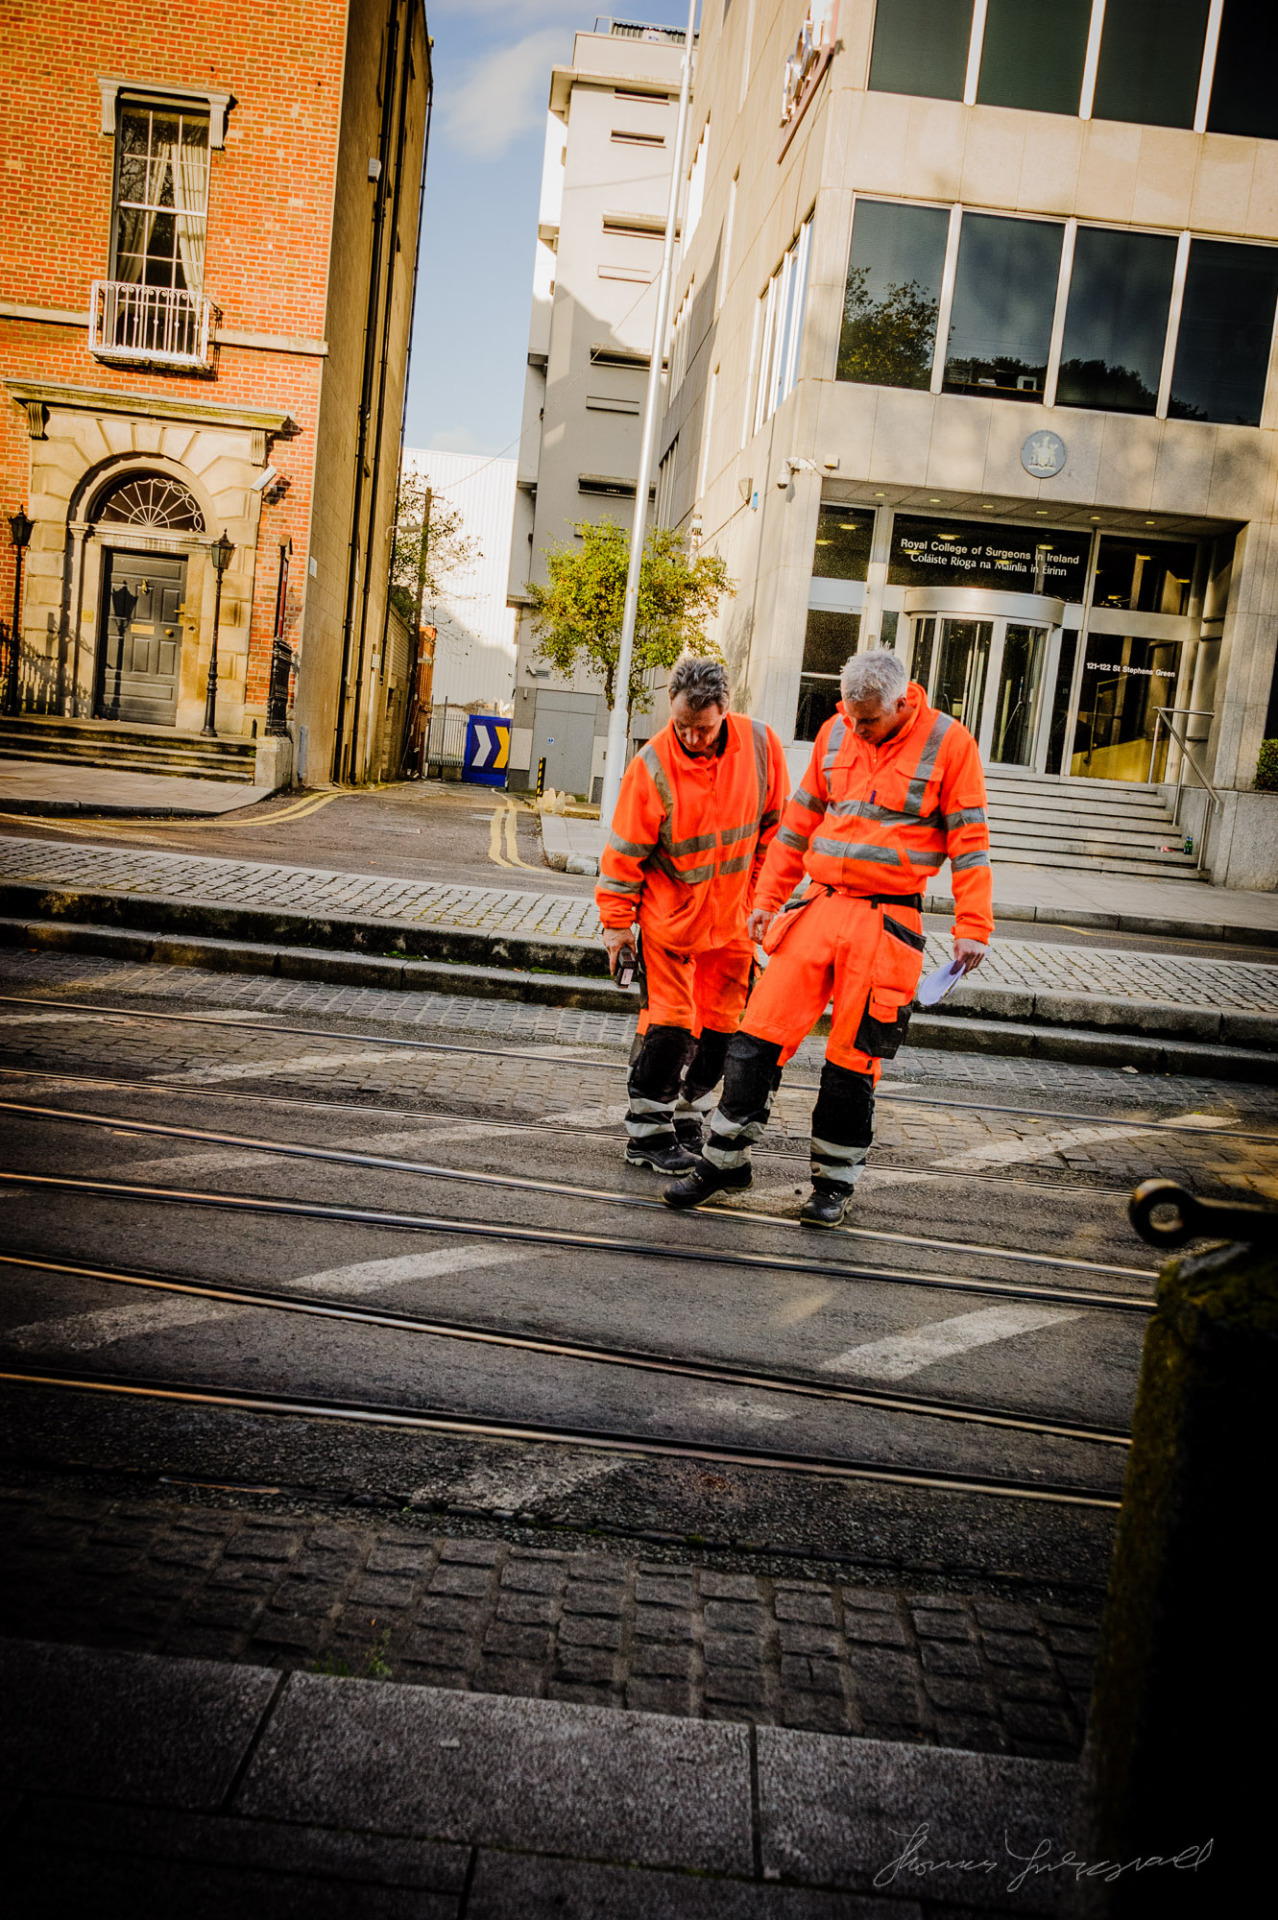 Inspecting the Luas Tracks